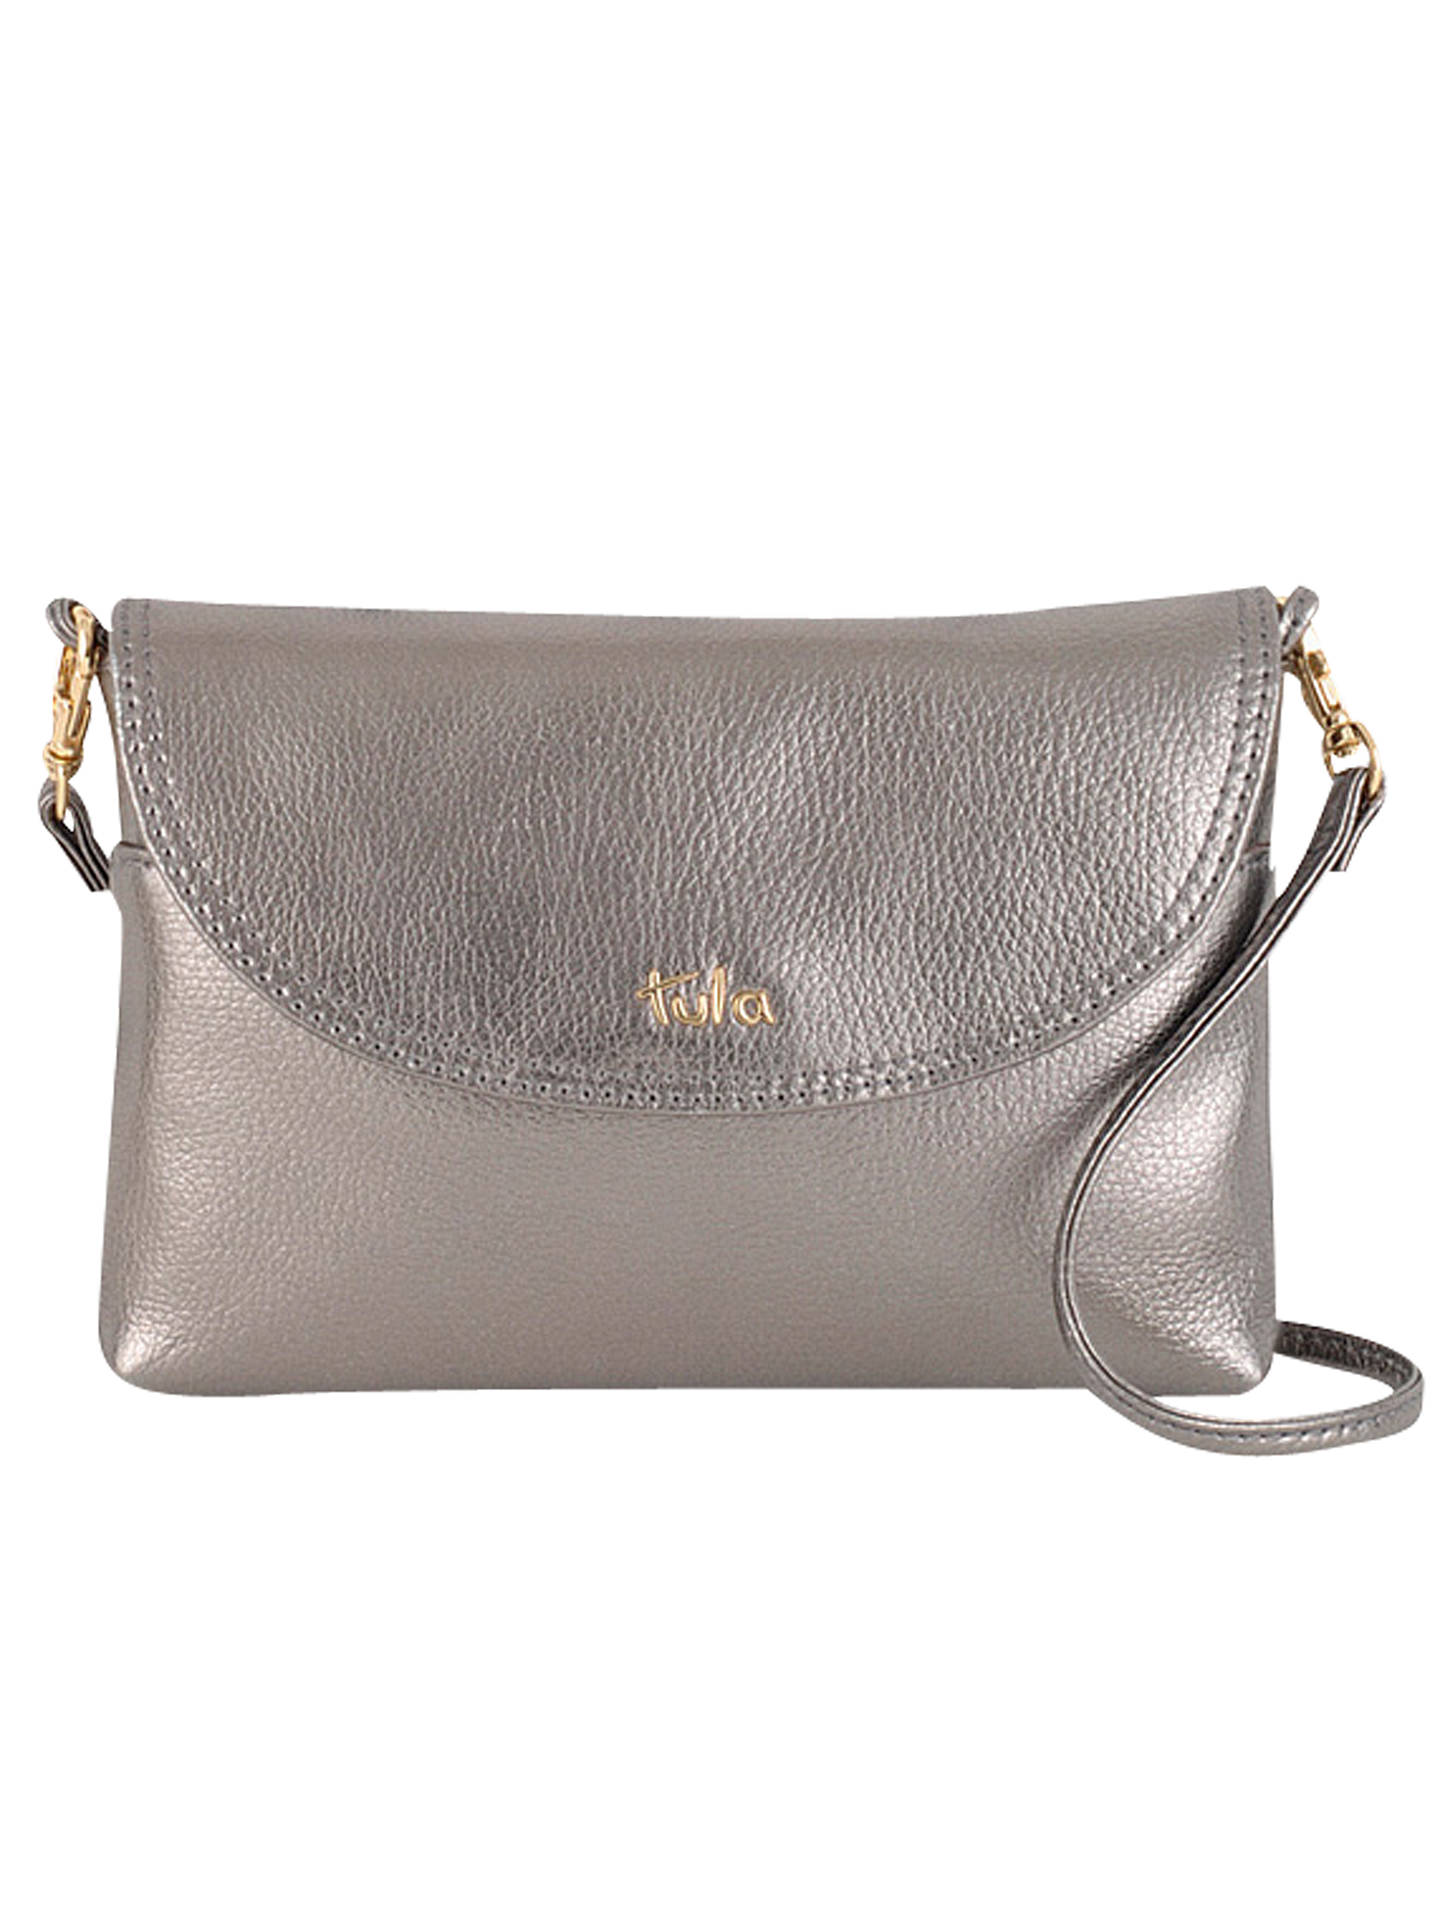 b361cafee1 Buy Tula Party Leather Across Body Bag, Silver Online at johnlewis.com ...